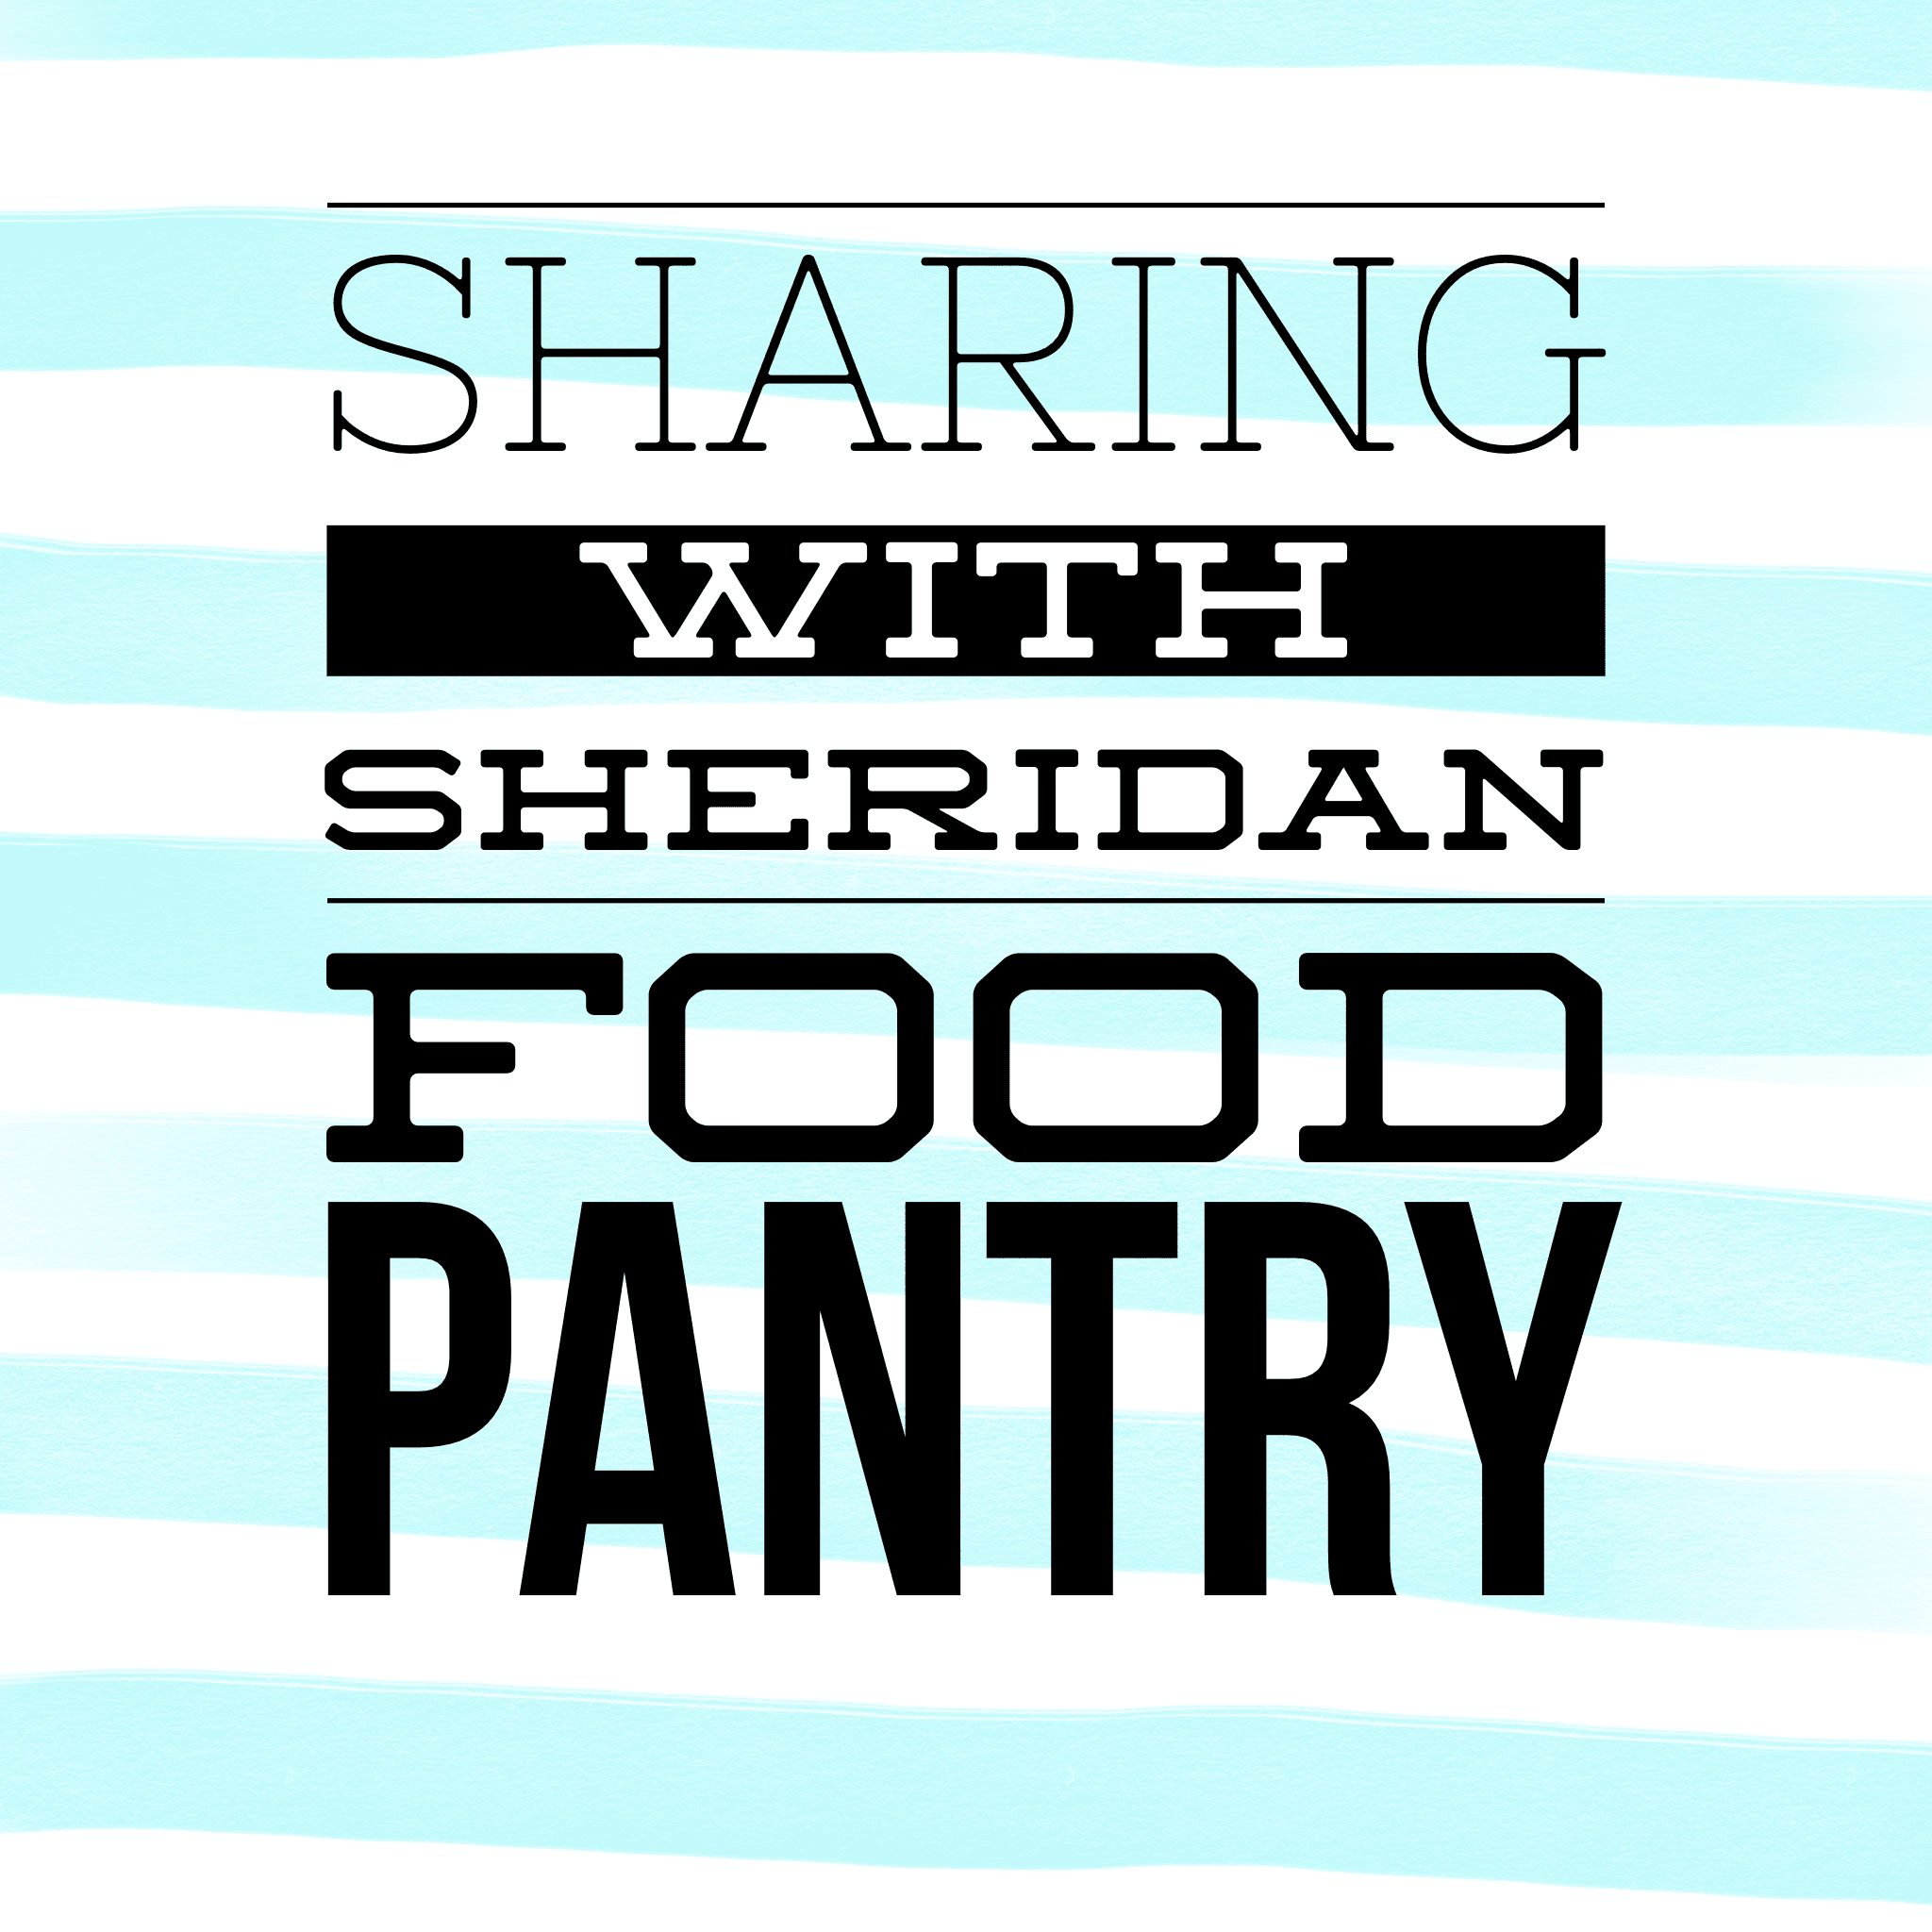 Sharing with Sheridan Food Pantry